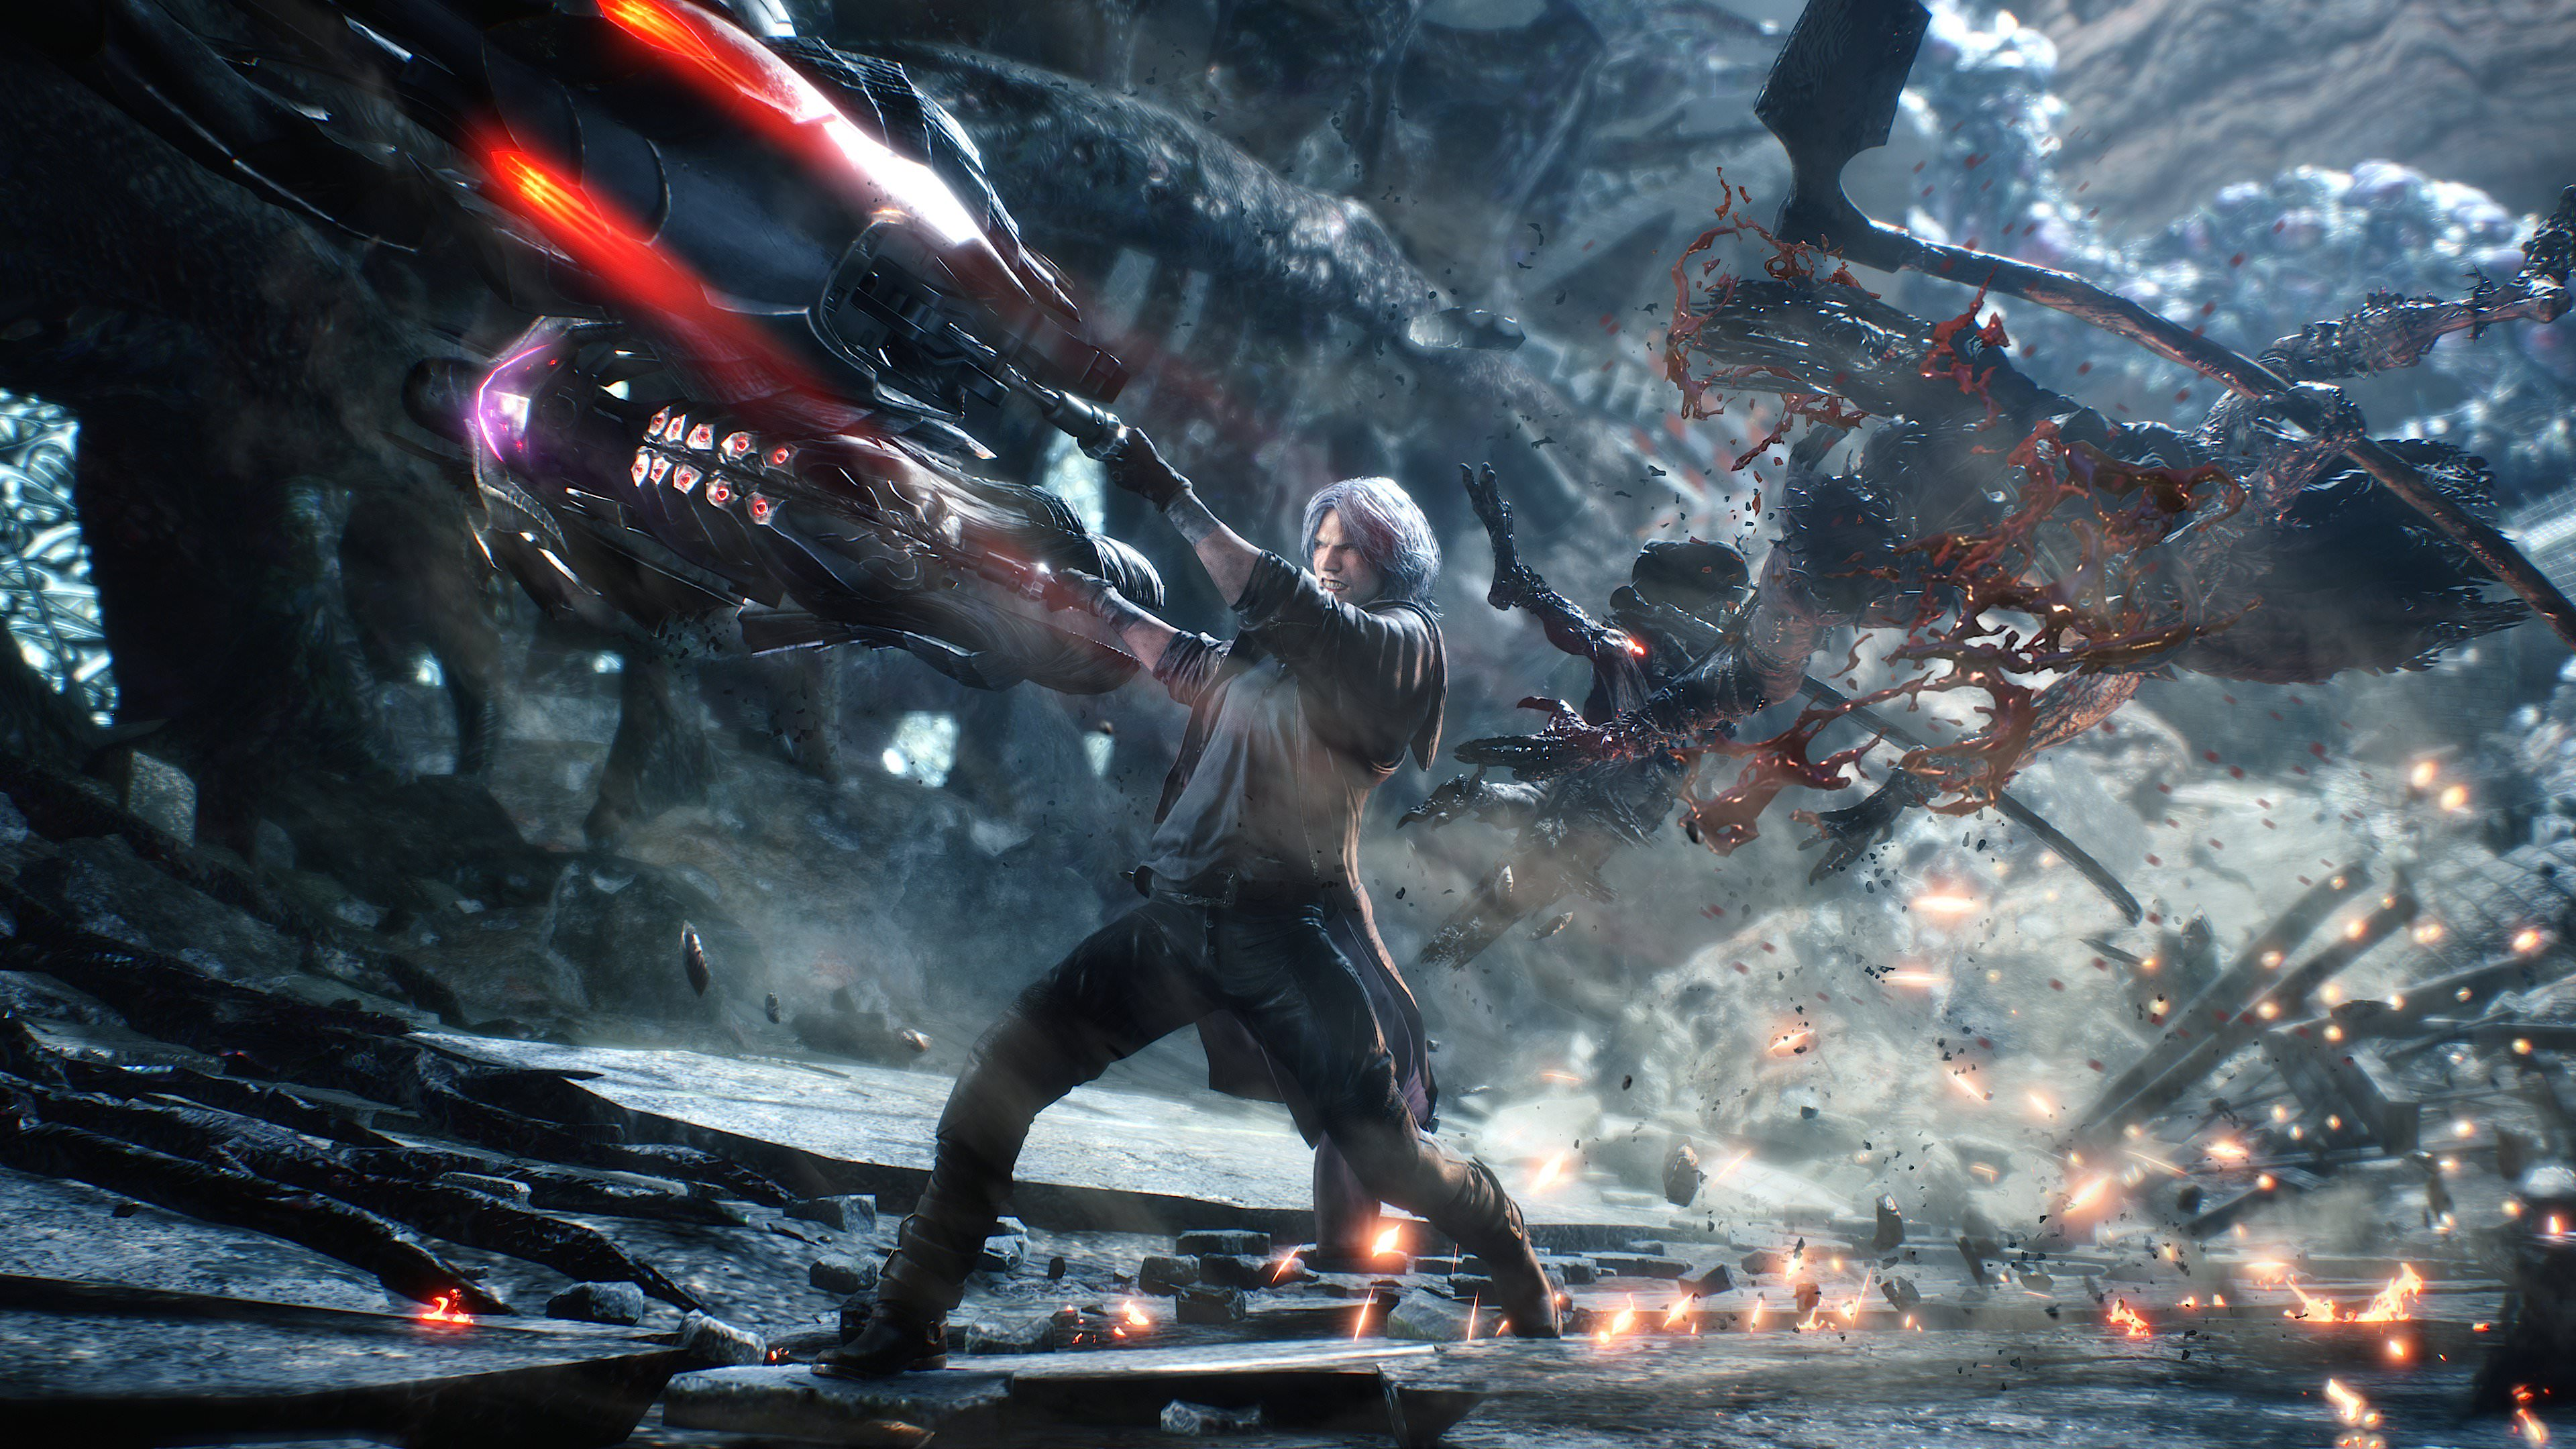 Devil May Cry 5 director says he is gearing up for his 'next title' after the first major update hits screenshot